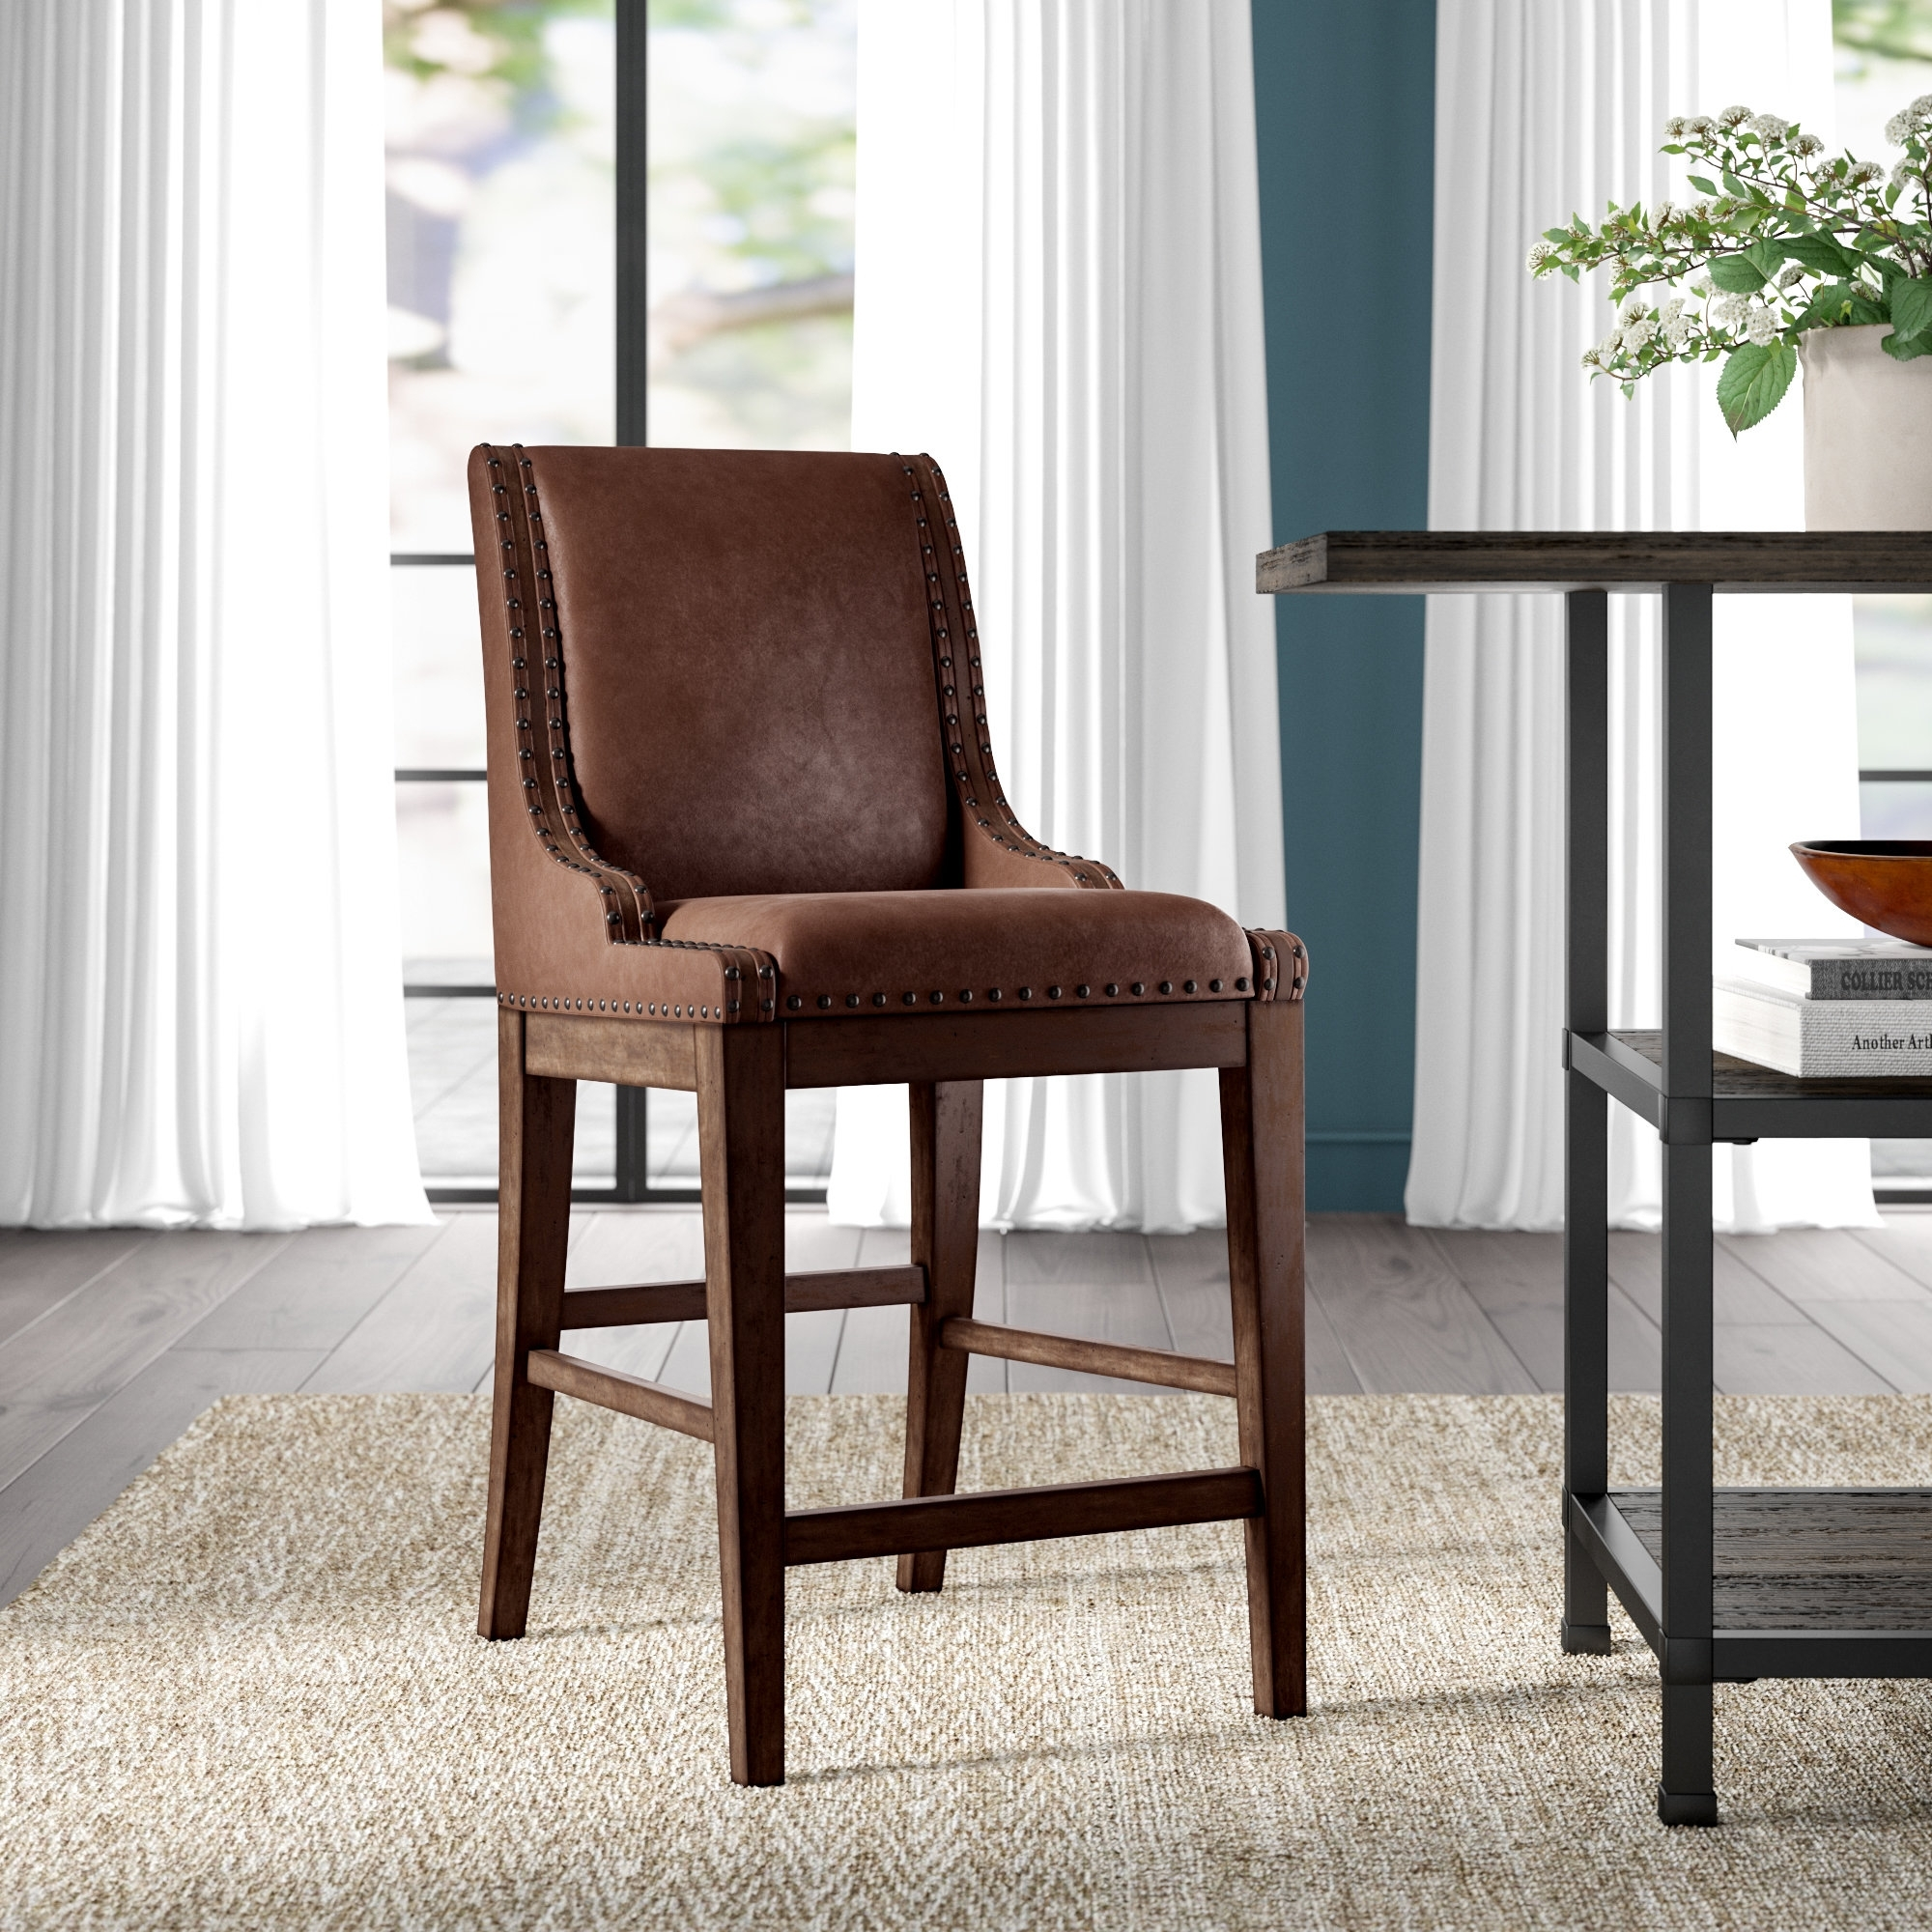 Inspiration about Well Liked Greyleigh Cairo Upholstered Dining Chair (#3 of 20)